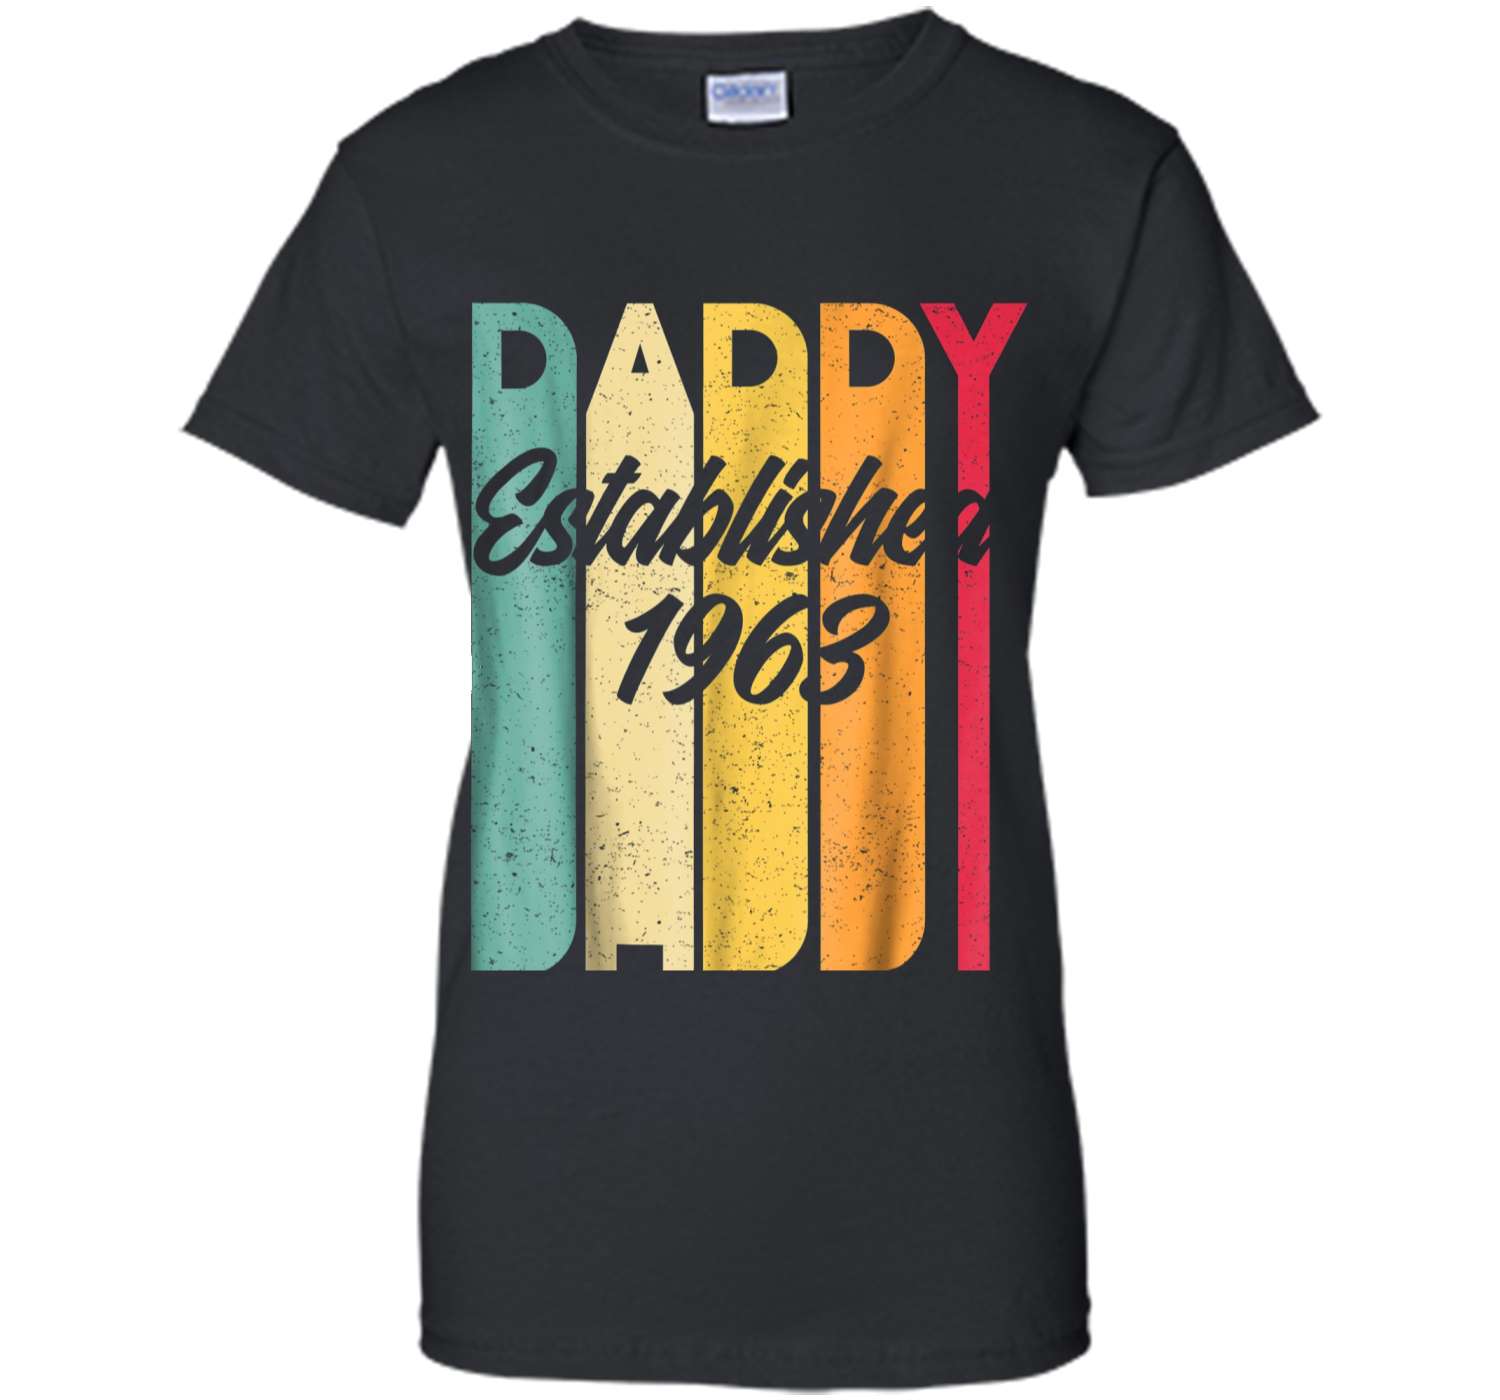 670f3bbfd Daddy Established EST 1963 Vintage T shirt Father s Day Gift Ladies Custom  - Lizado